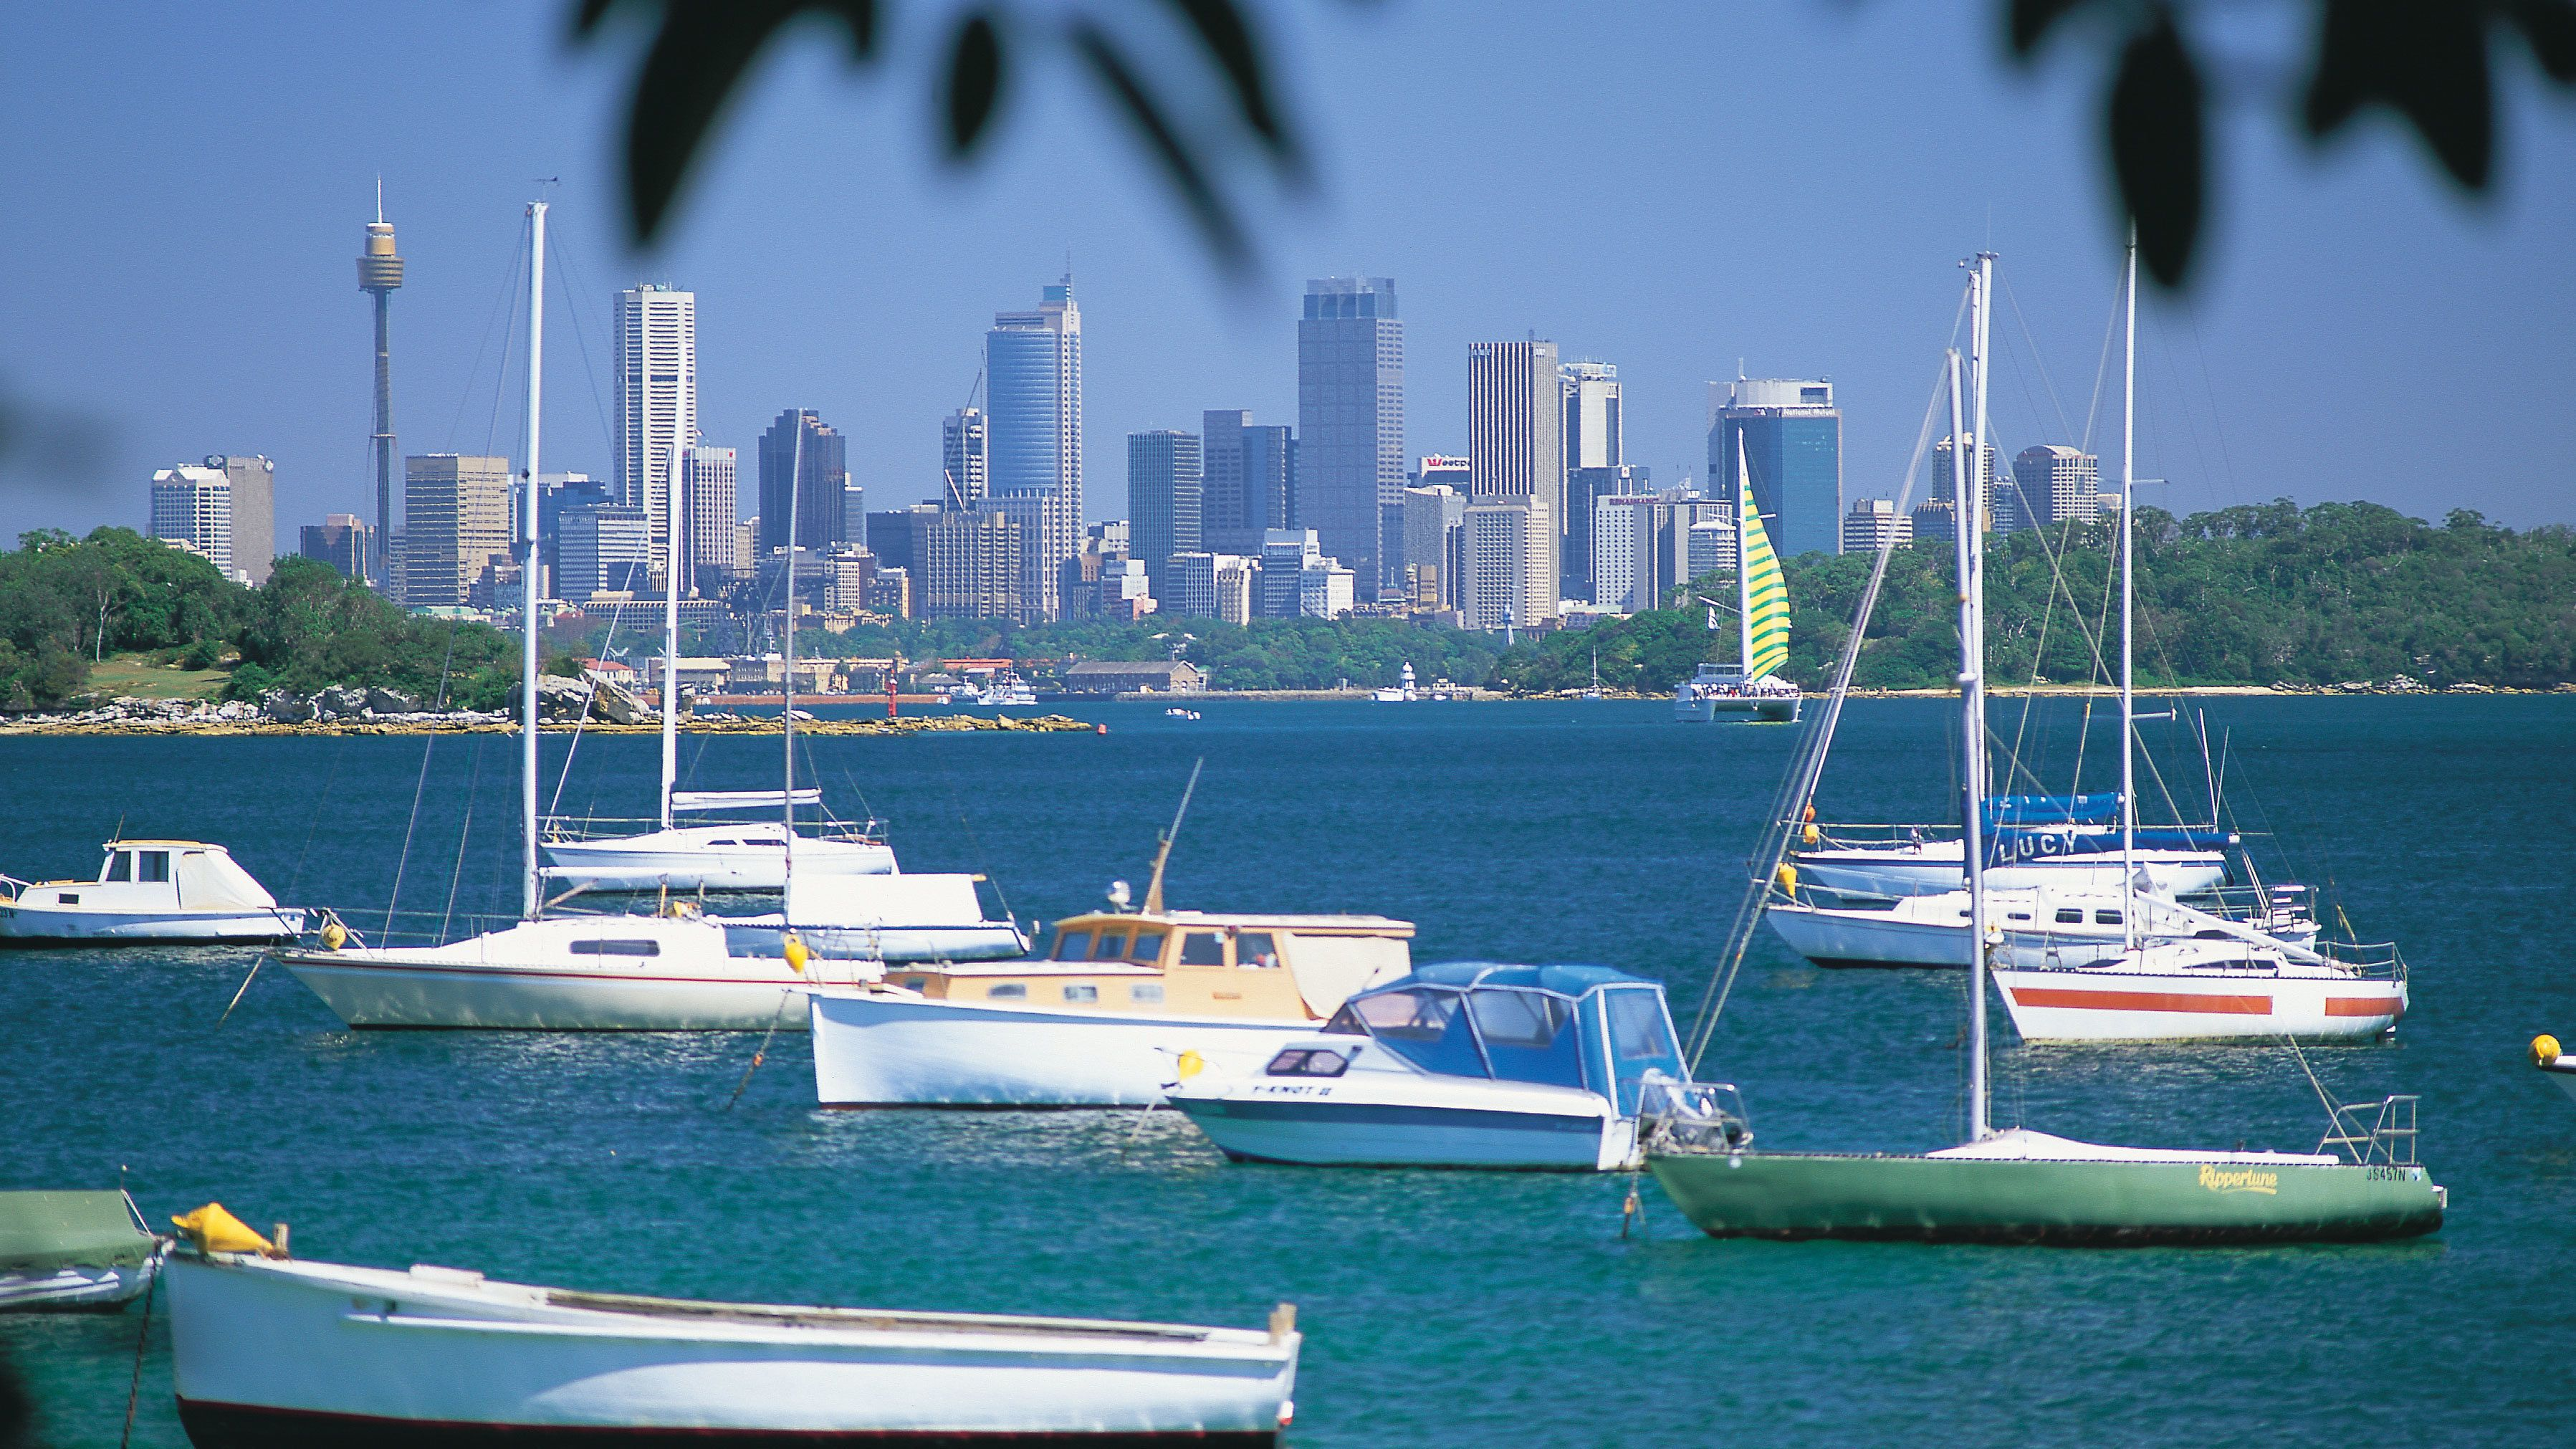 Sailboats on the beautiful waters of the Sydney Harbour with a wonderful view of the city buildings in the distance